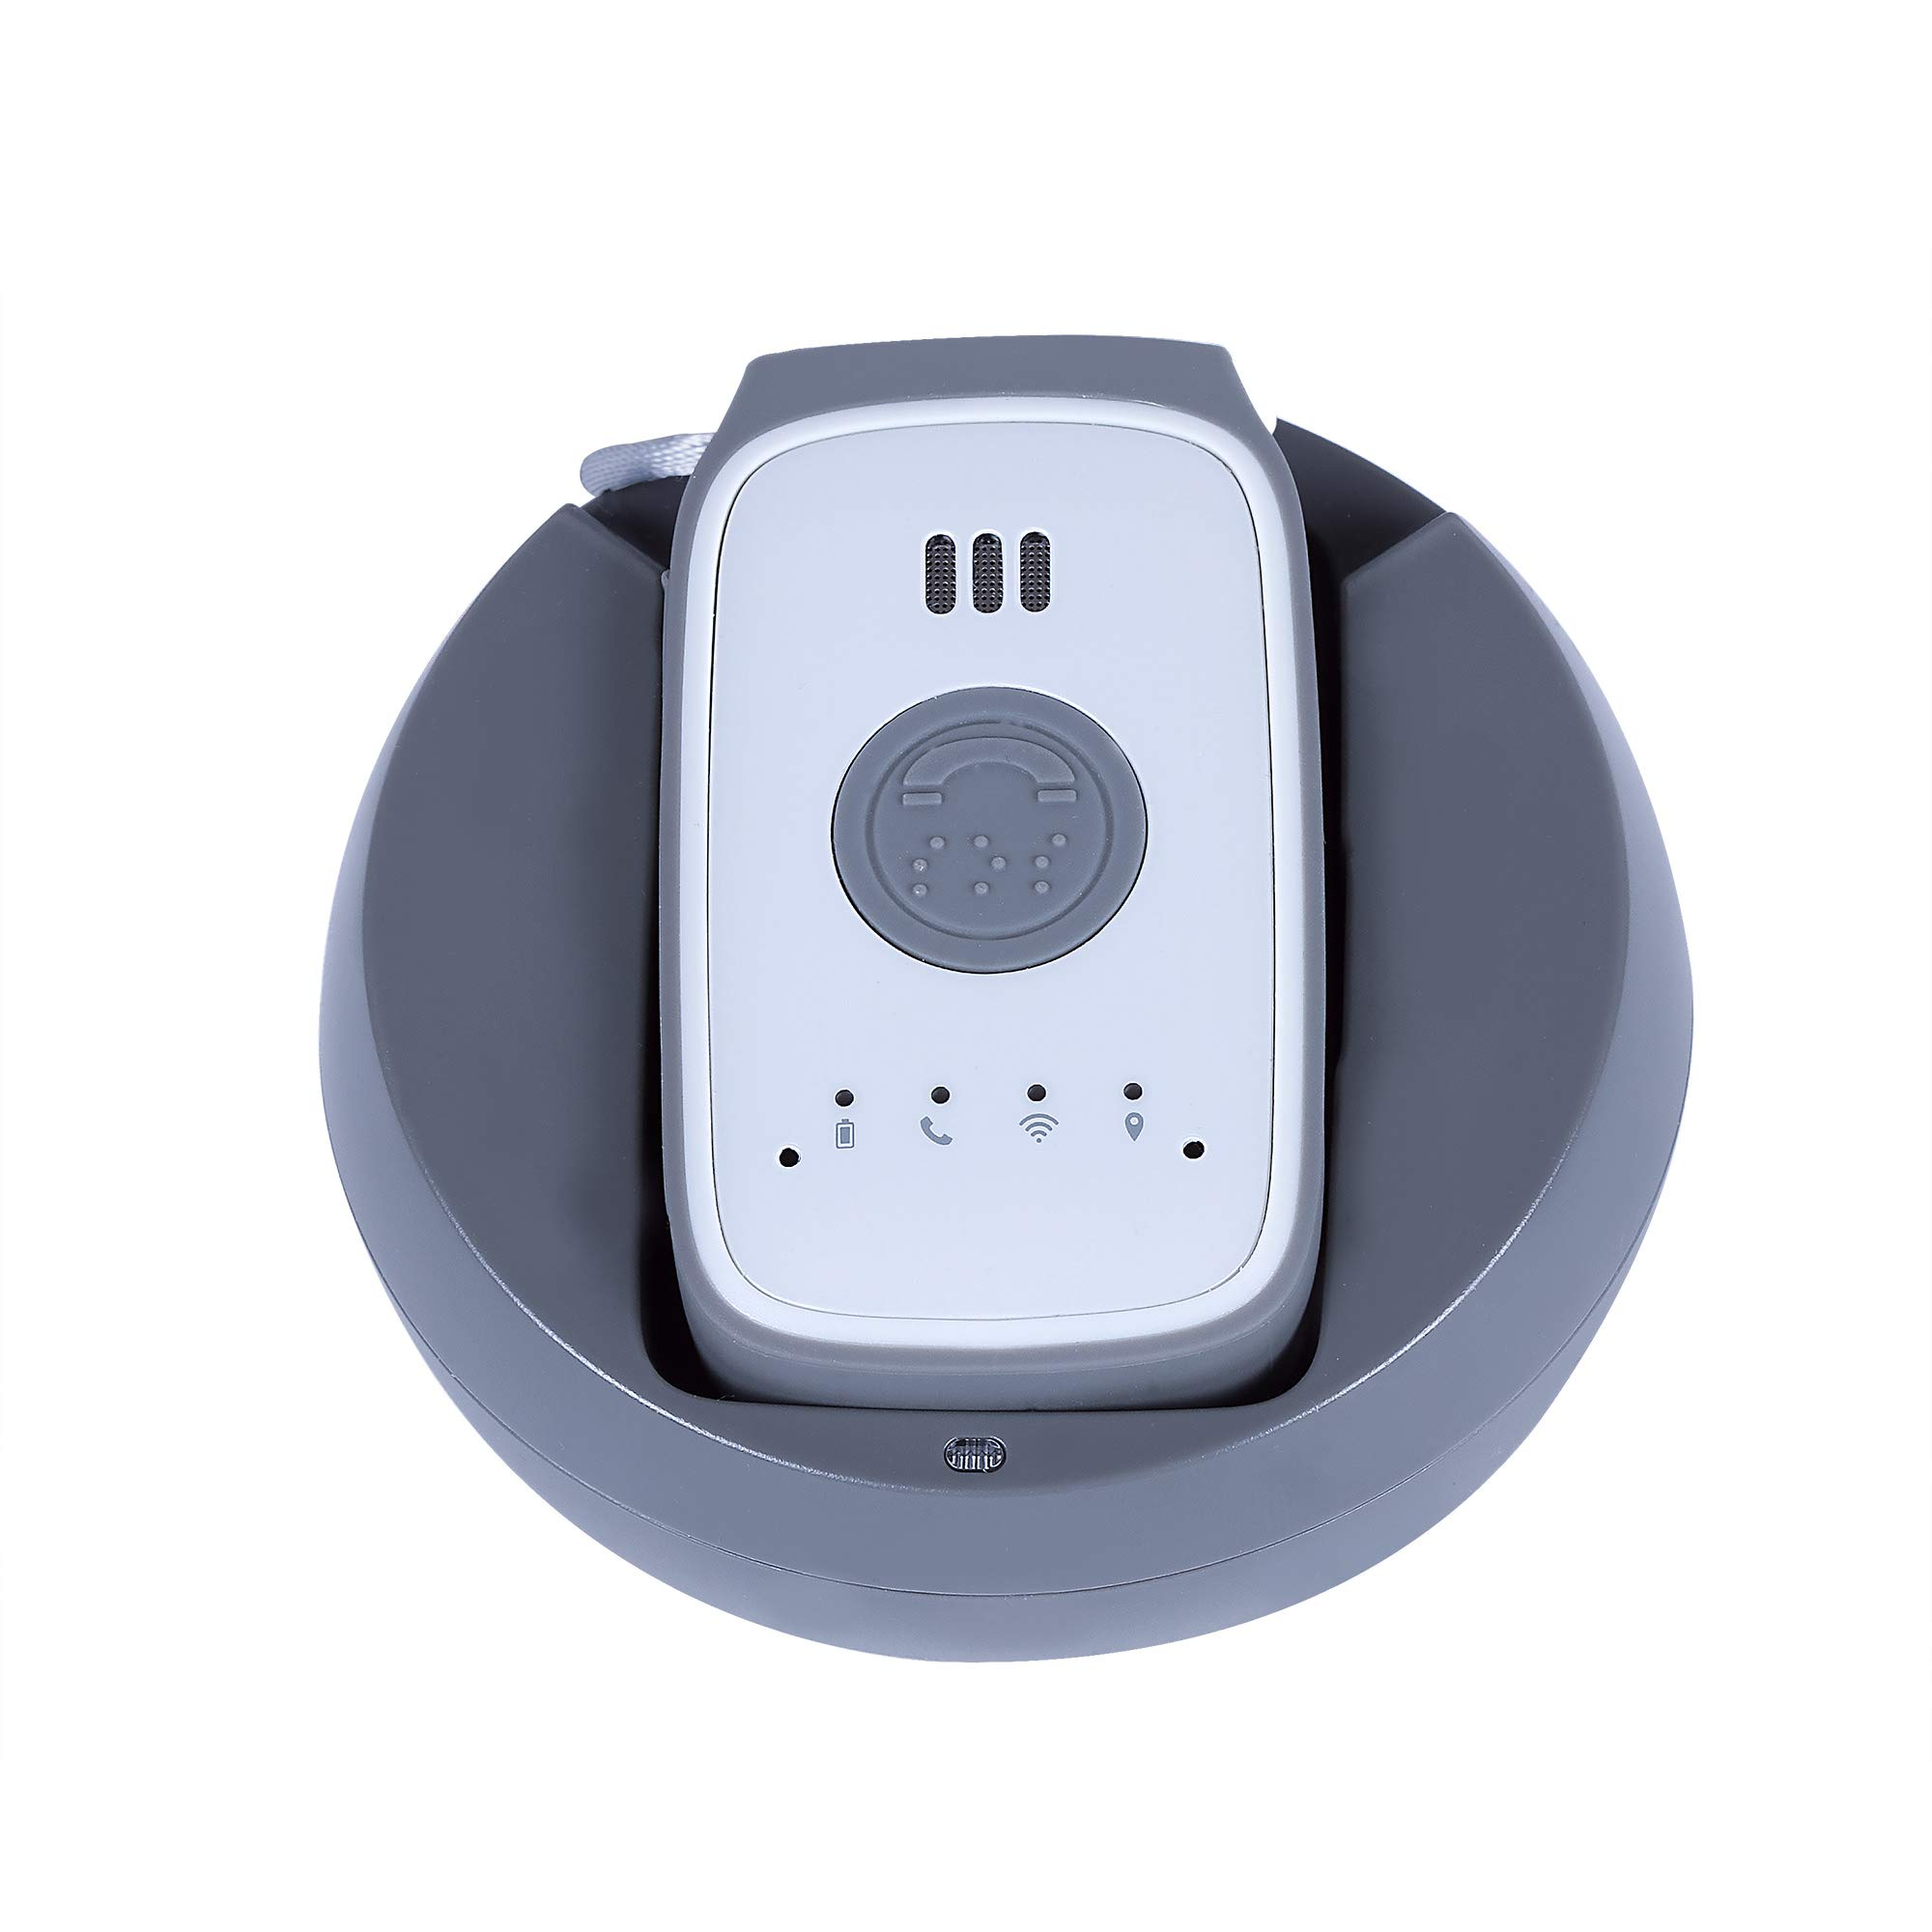 LifeStation Mobile GPS Medical Alert - All-in-one-System for Seniors On-The-Go. Nationwide GPS and WiFi Coverage. Includes 6 Free Months of 24/7 Emergency Monitoring. by LifeStation (Image #7)